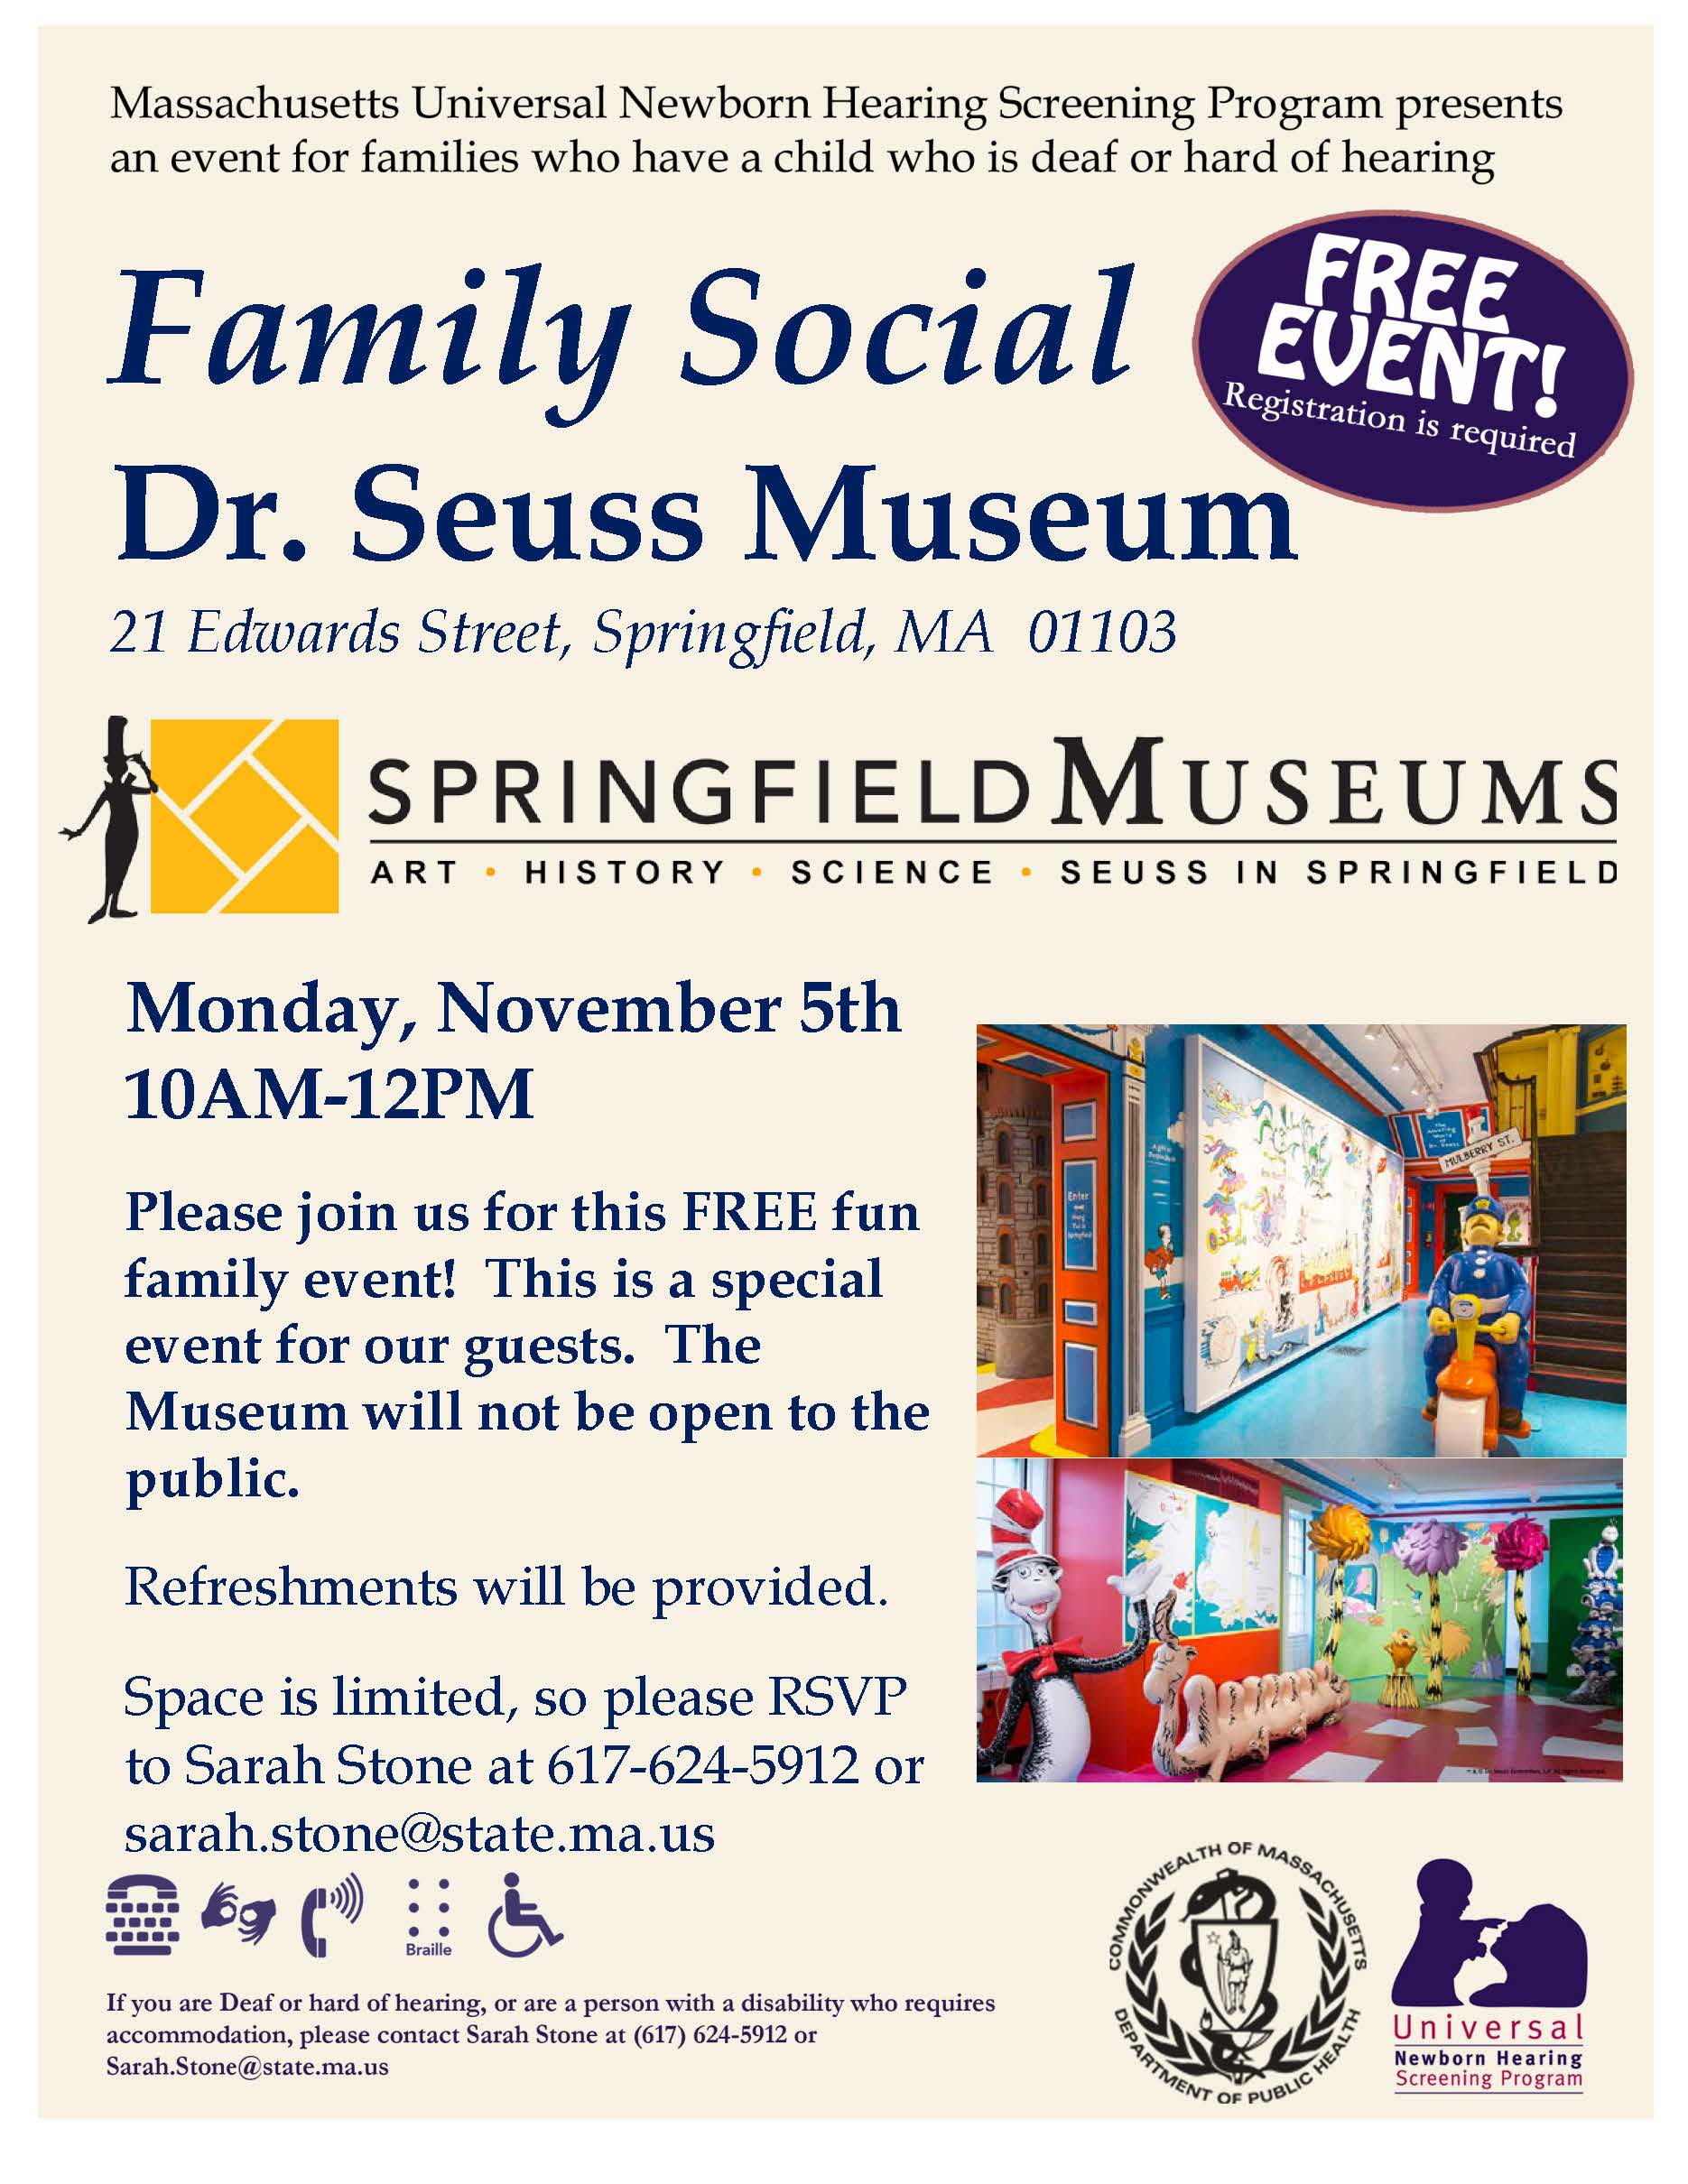 Famiy Event at the Dr. Seuss Museum